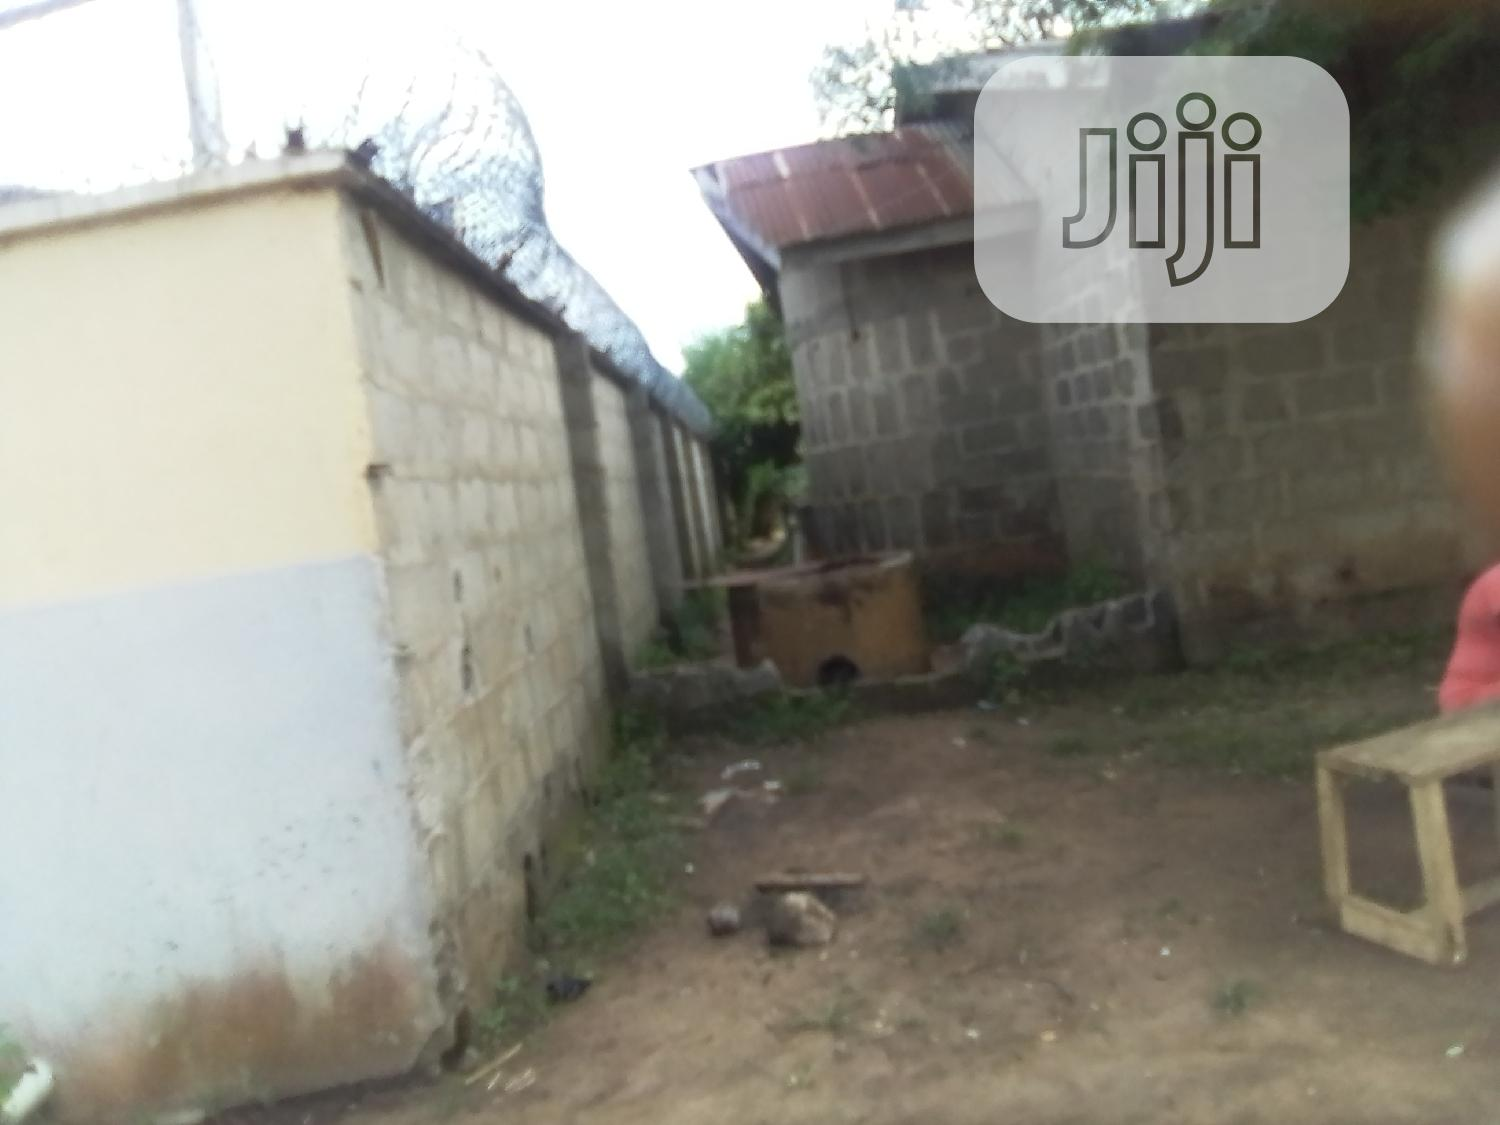 Register Deed Of Agreement And Family Receipt | Commercial Property For Sale for sale in Badagry, Lagos State, Nigeria